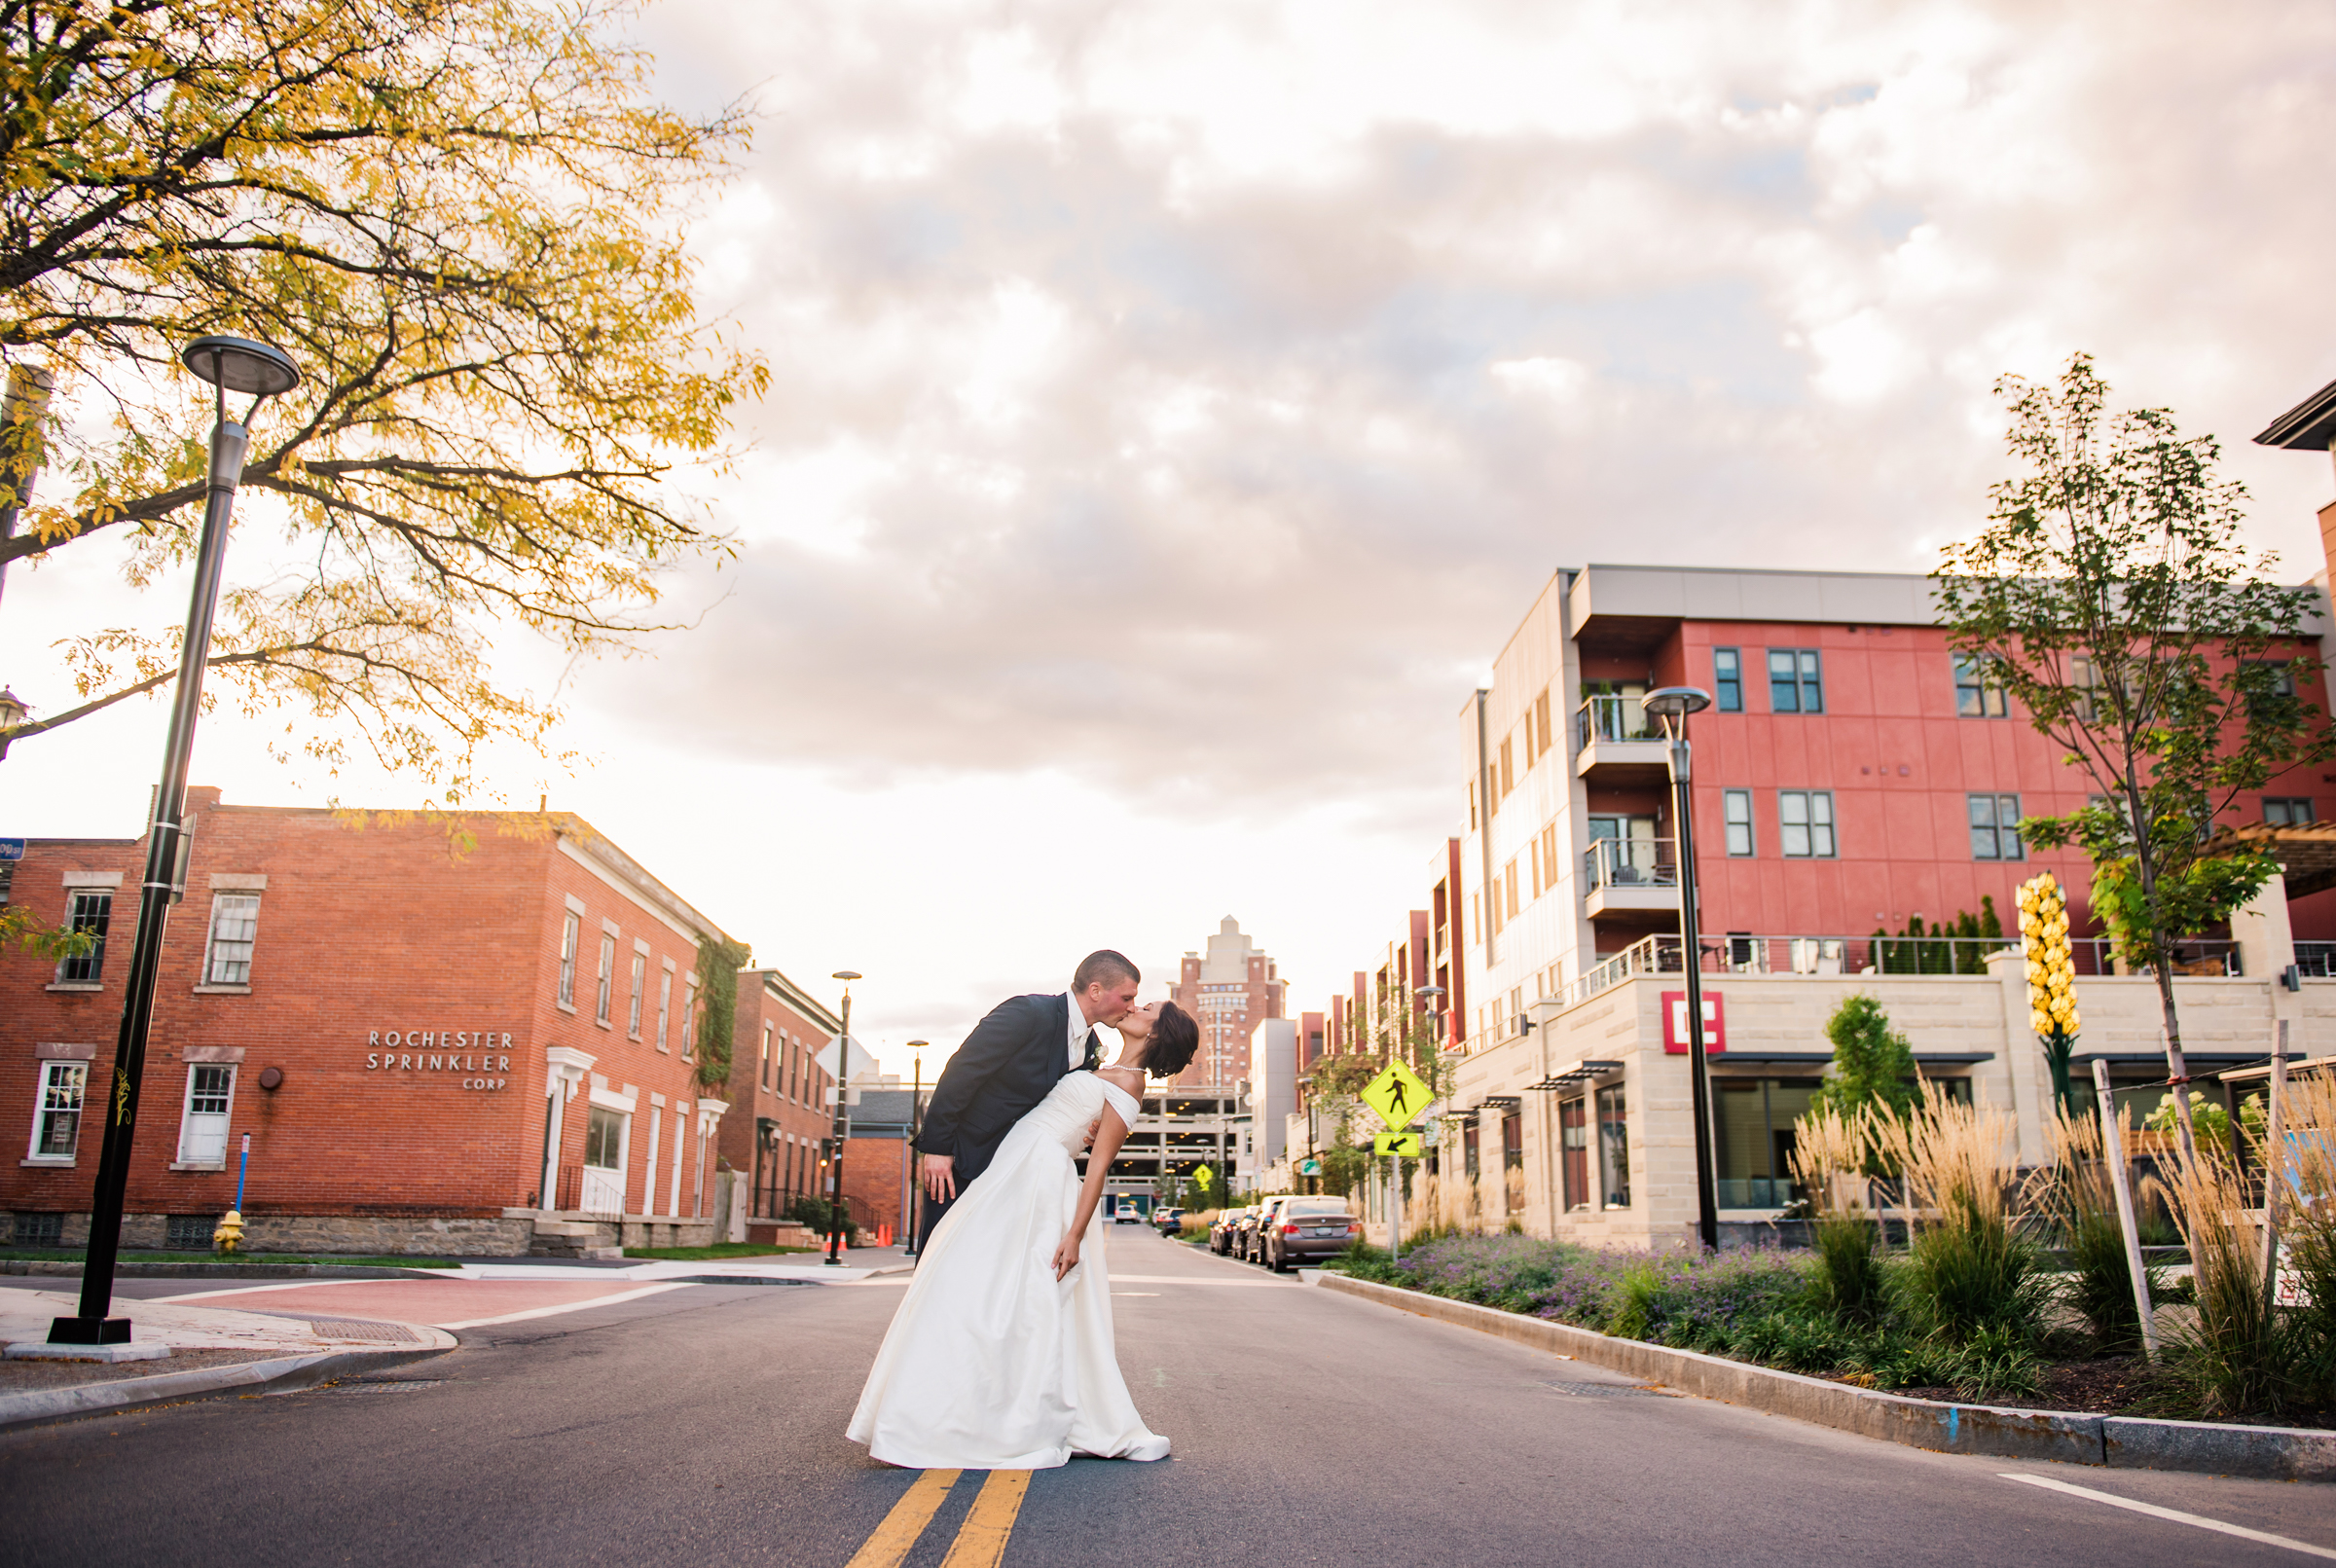 JILL_STUDIO_Wedding_JILL_STUDIO_Rochester_NY_Photographer_25-DSC_9354.jpg